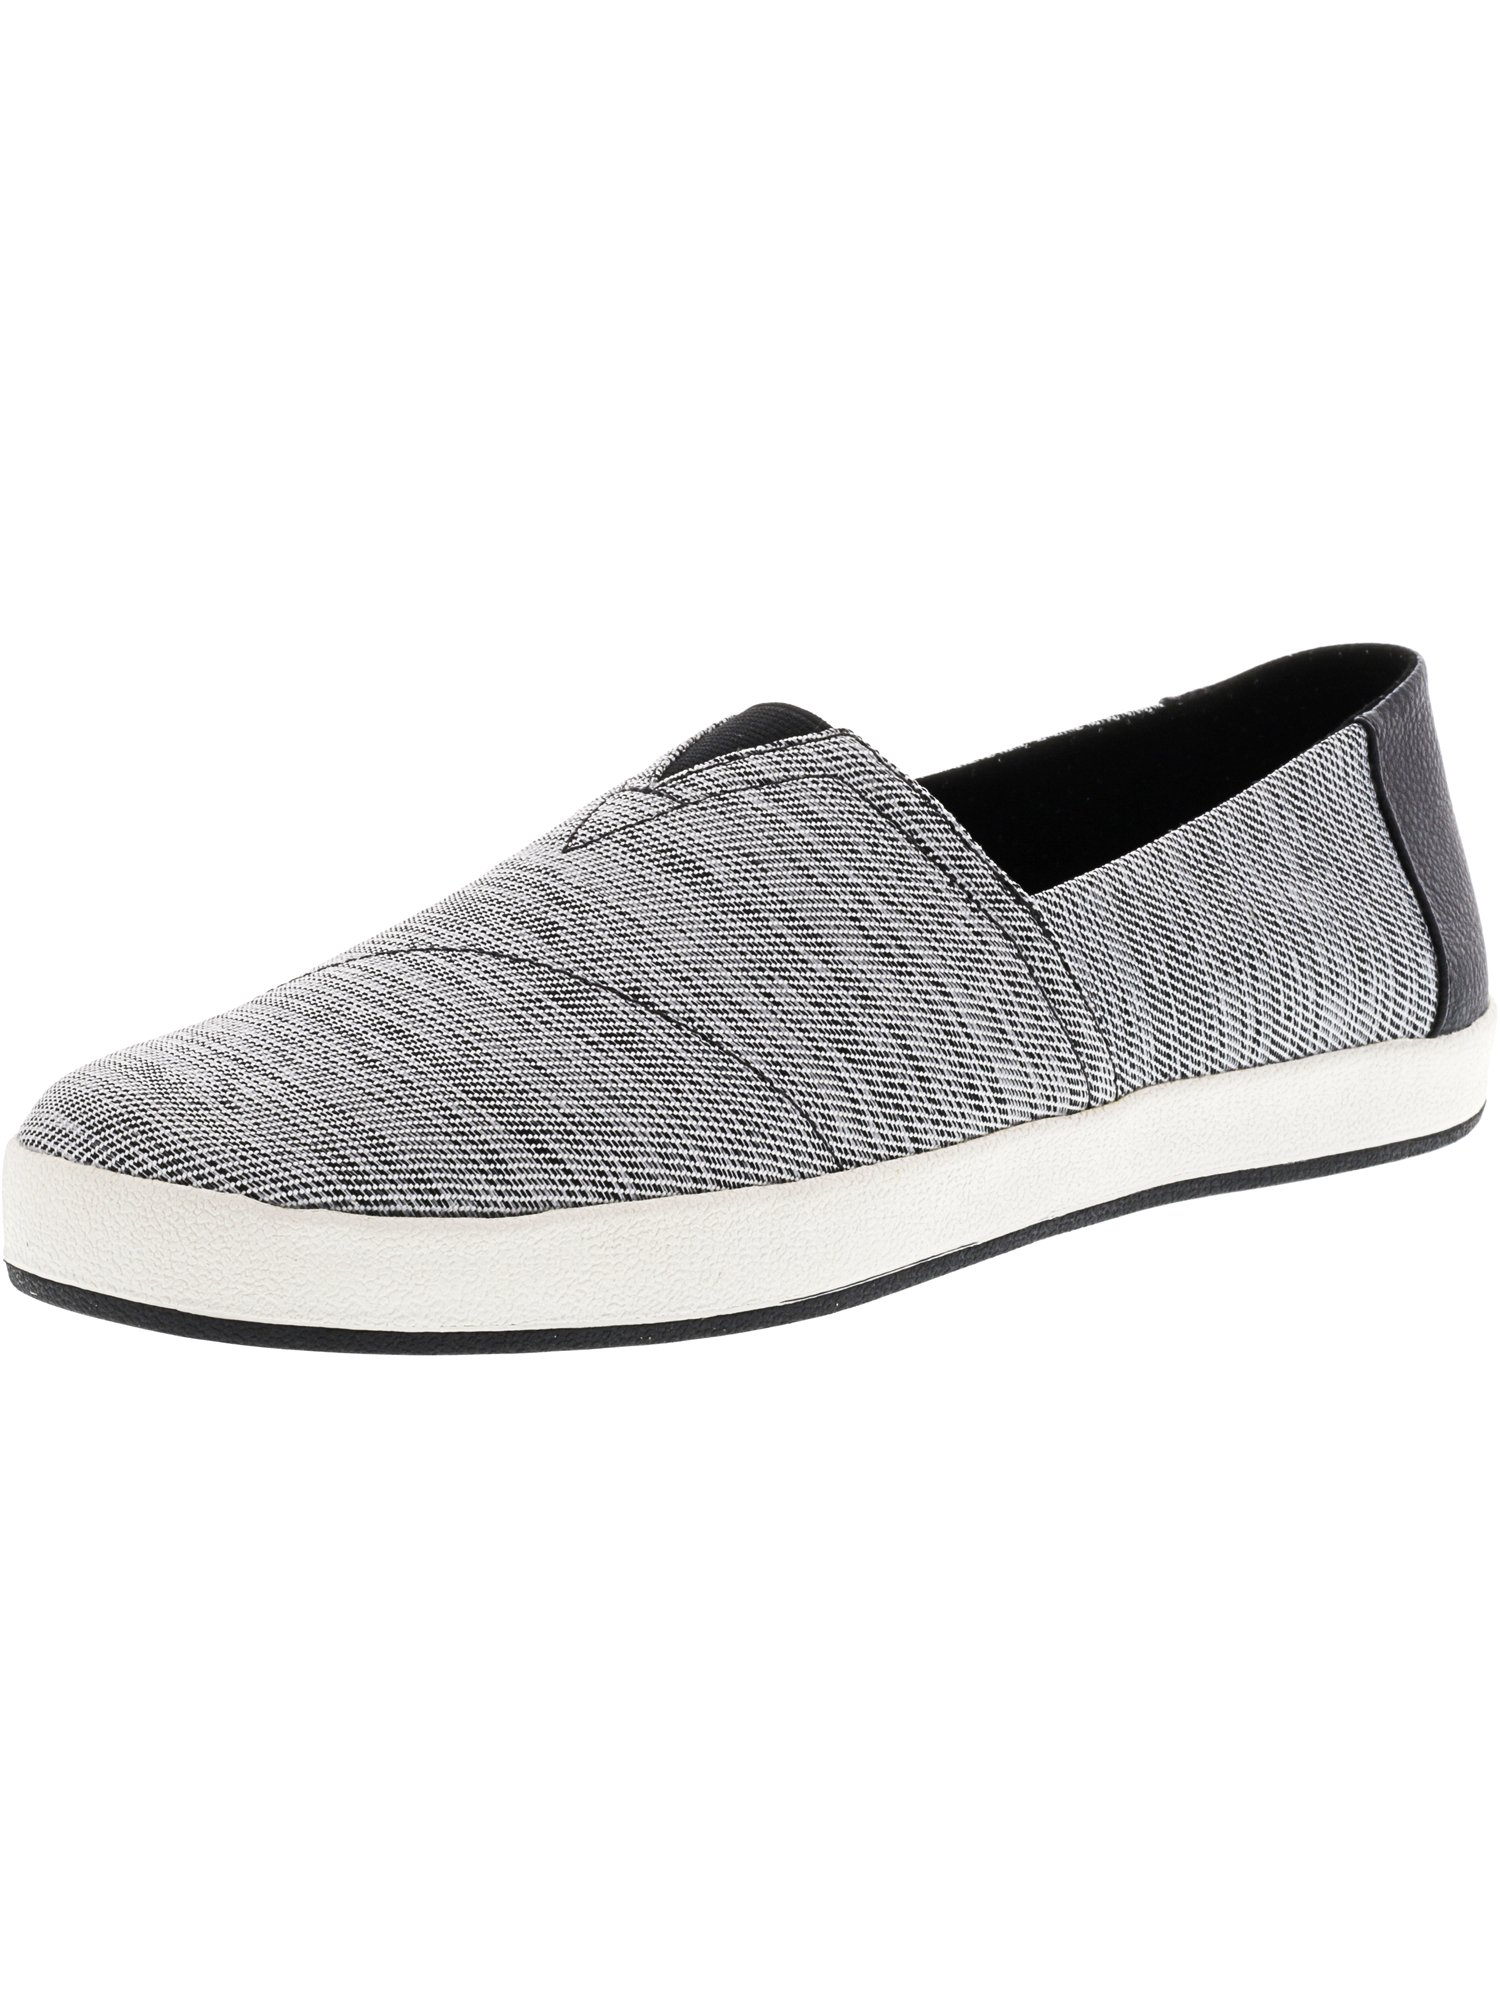 f8709b05b52 TOMS - Toms Men s Avalon Space-Dye Forged Iron Grey Ankle-High ...